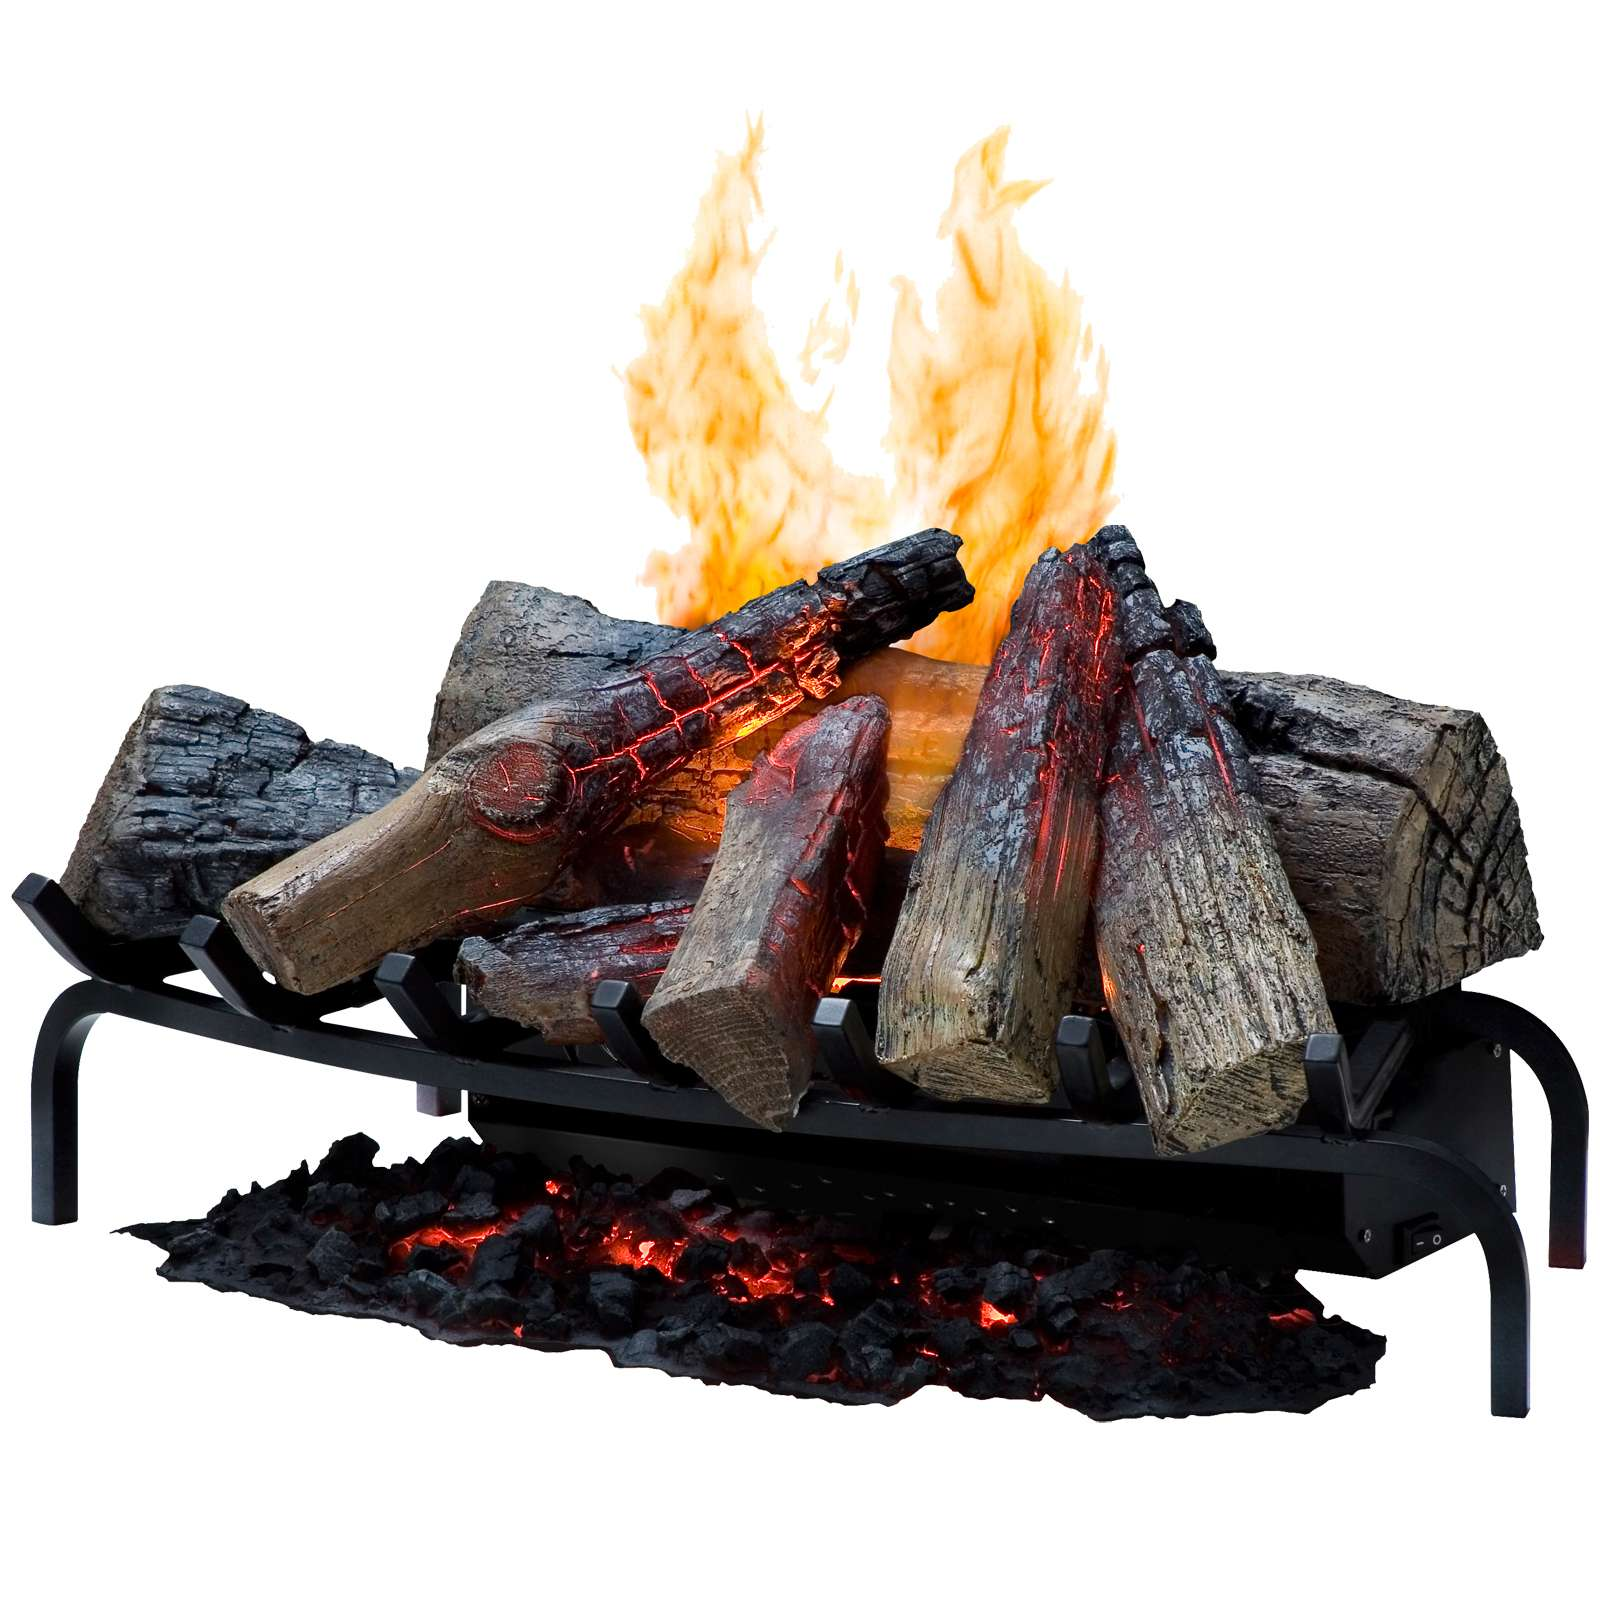 Shop Plow and Hearth for quality hearth yard and garden and outdoor and indoor living products as well as apparel We have everything you need for your home